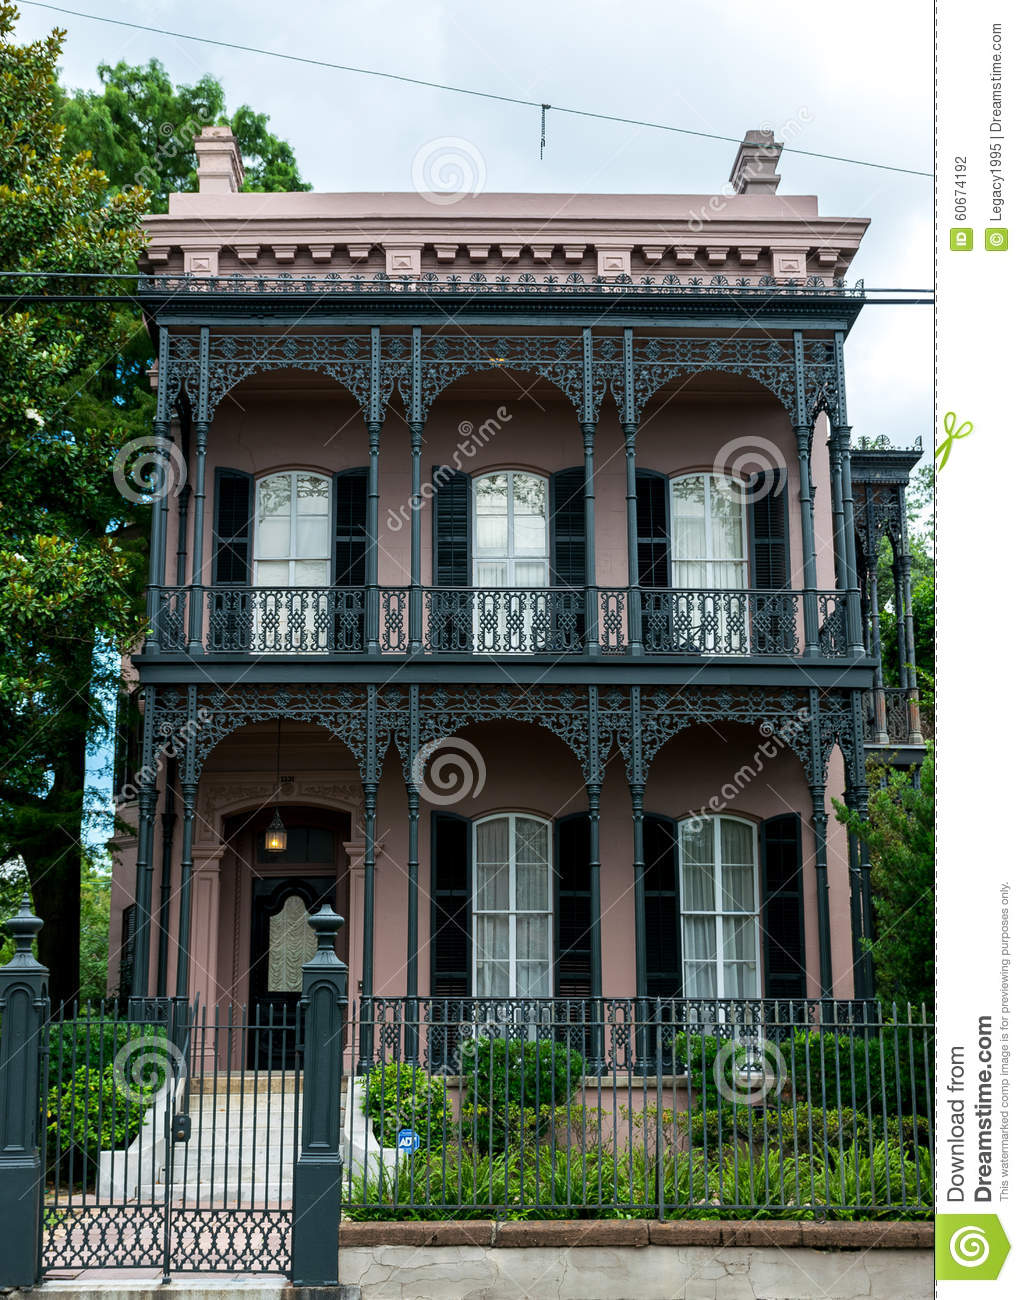 New orleans garden district architecture editorial for Classic house french kiss